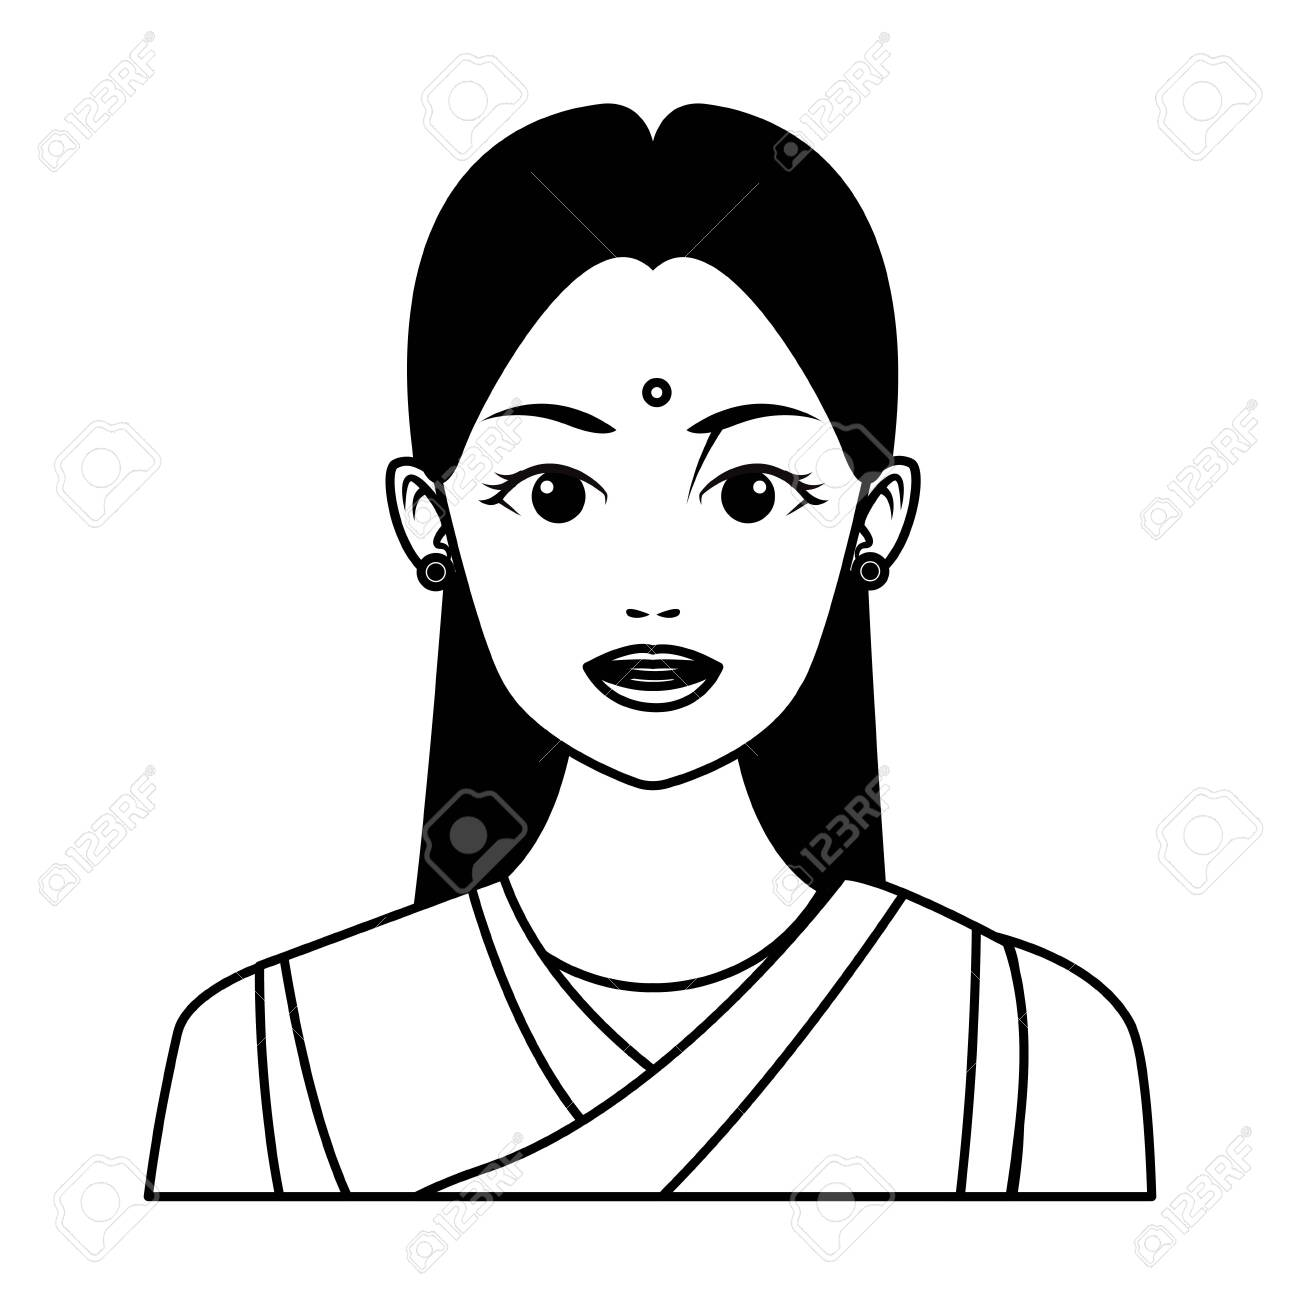 28+ Indian Woman Cartoon Drawing Background